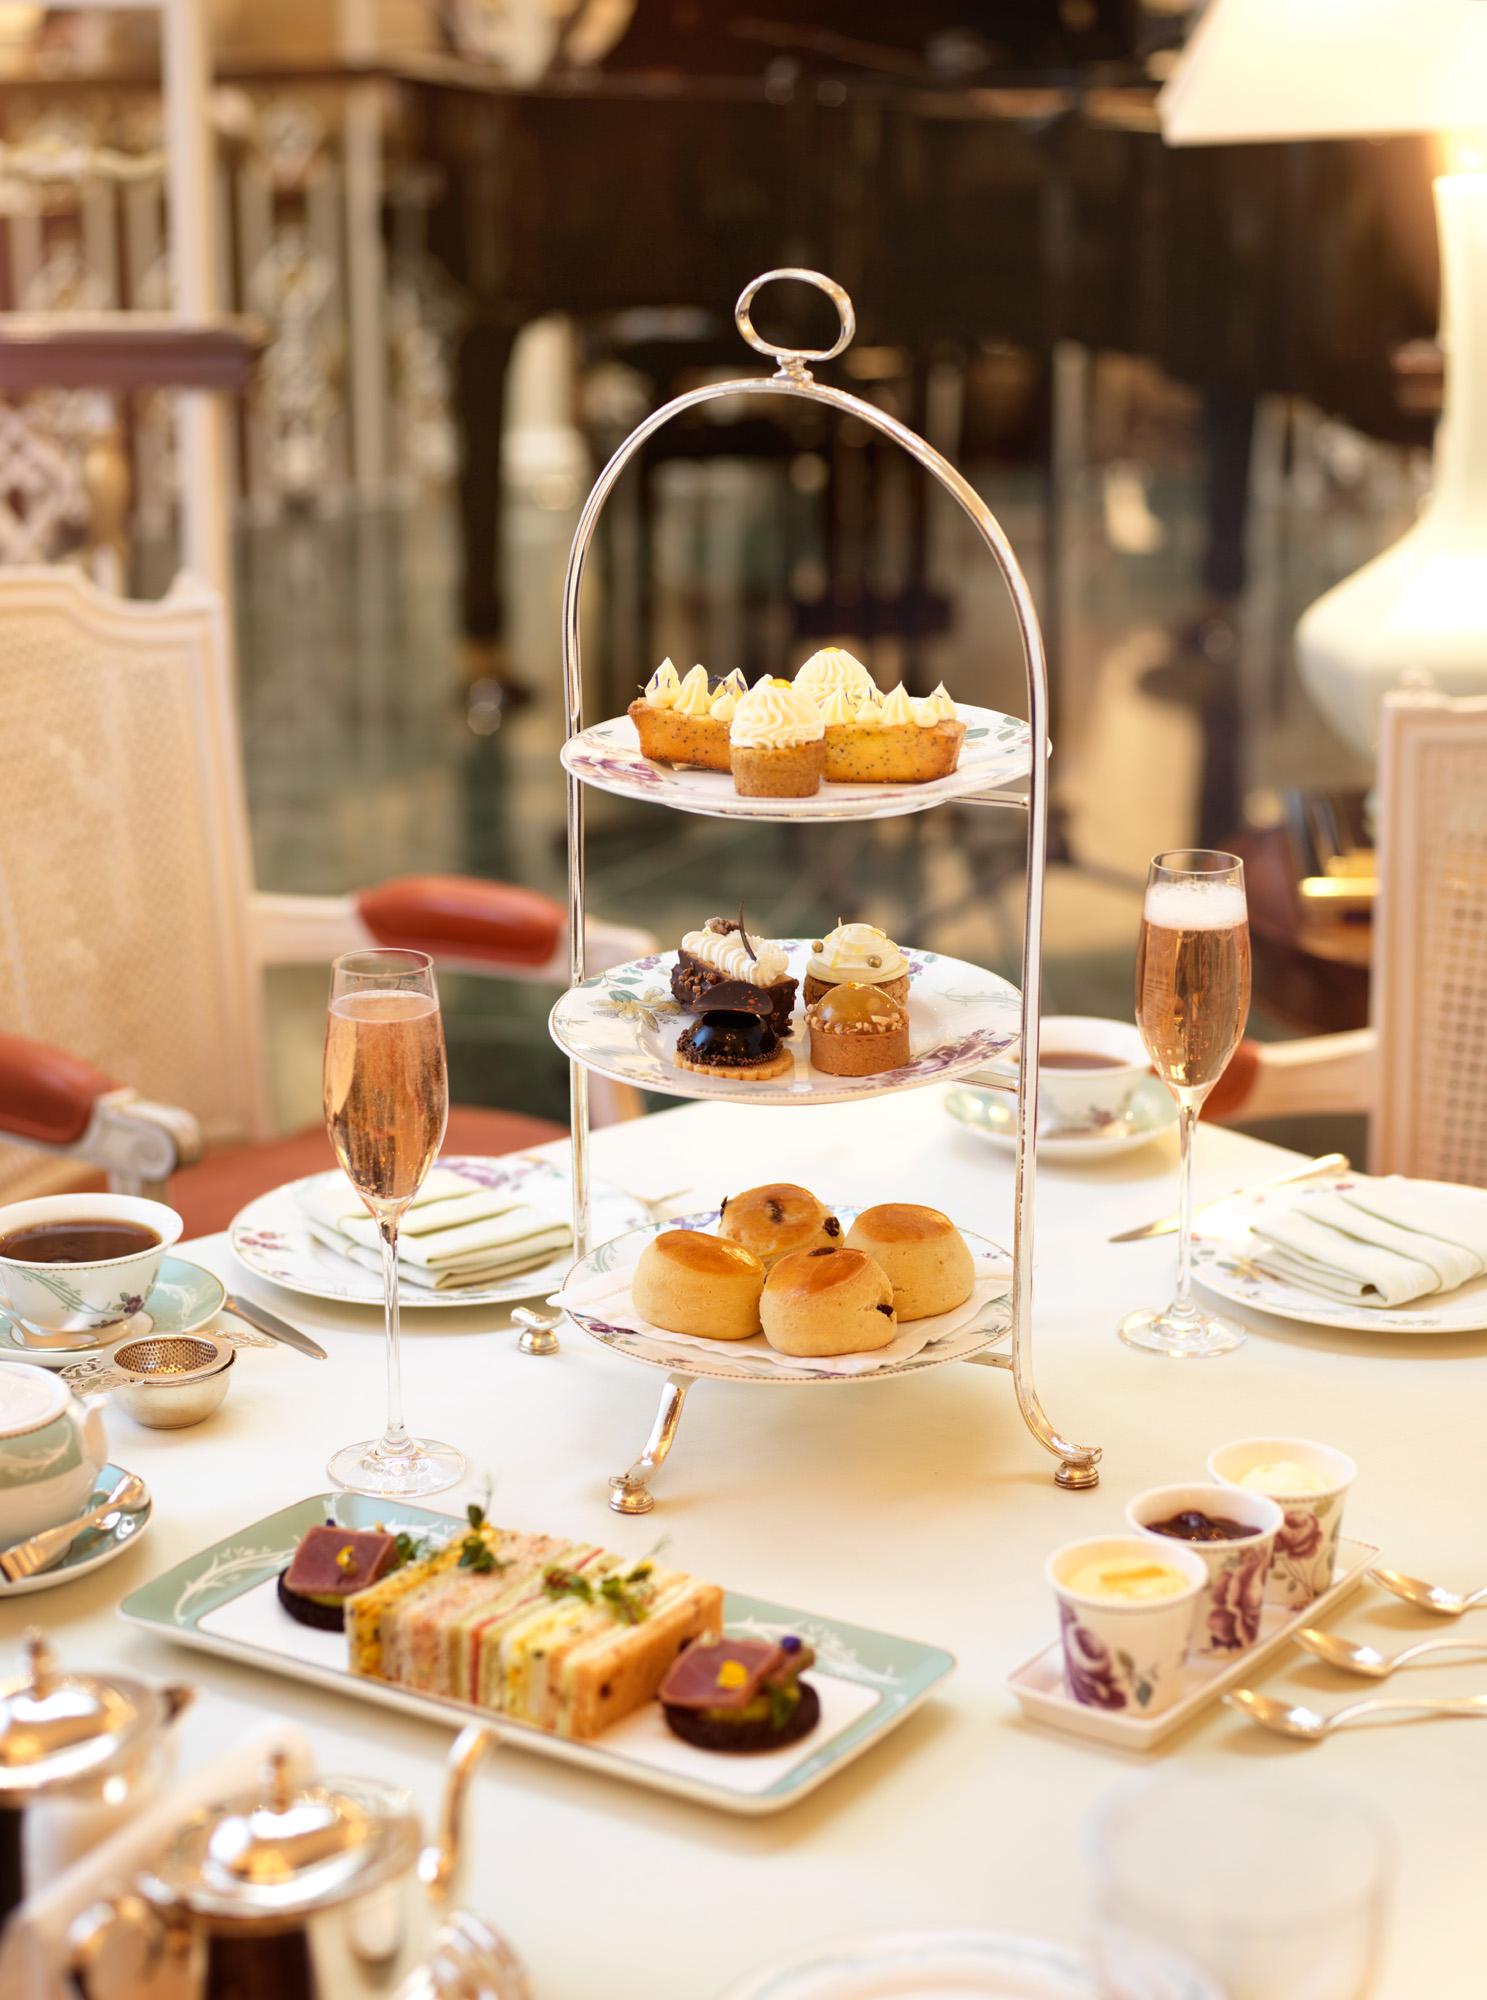 Afternoon Tea at The Savoy